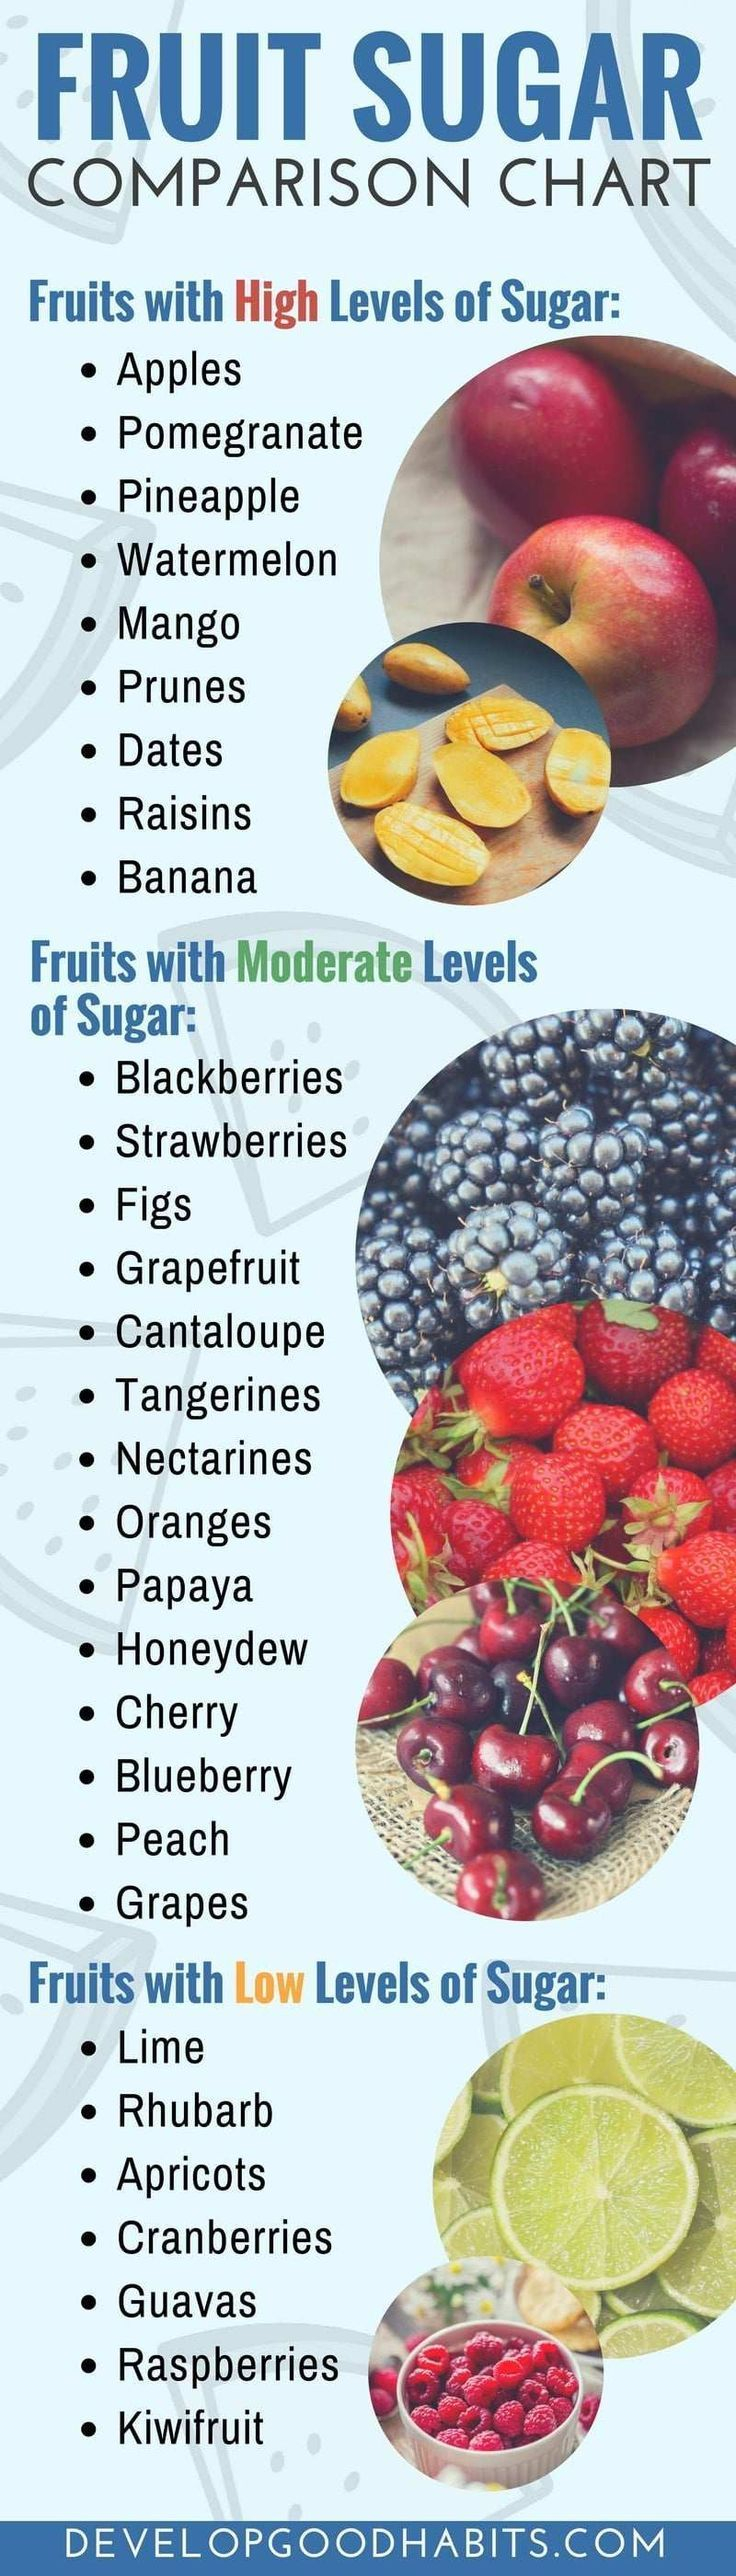 Can You Get Diabetes From Fruit Sugar Fruit Sugar Comparison Chart For Diabetes Diabetics And Those Trying To Limit Sugar For Purposes Of Healthy Healthy Snacks Nutrition